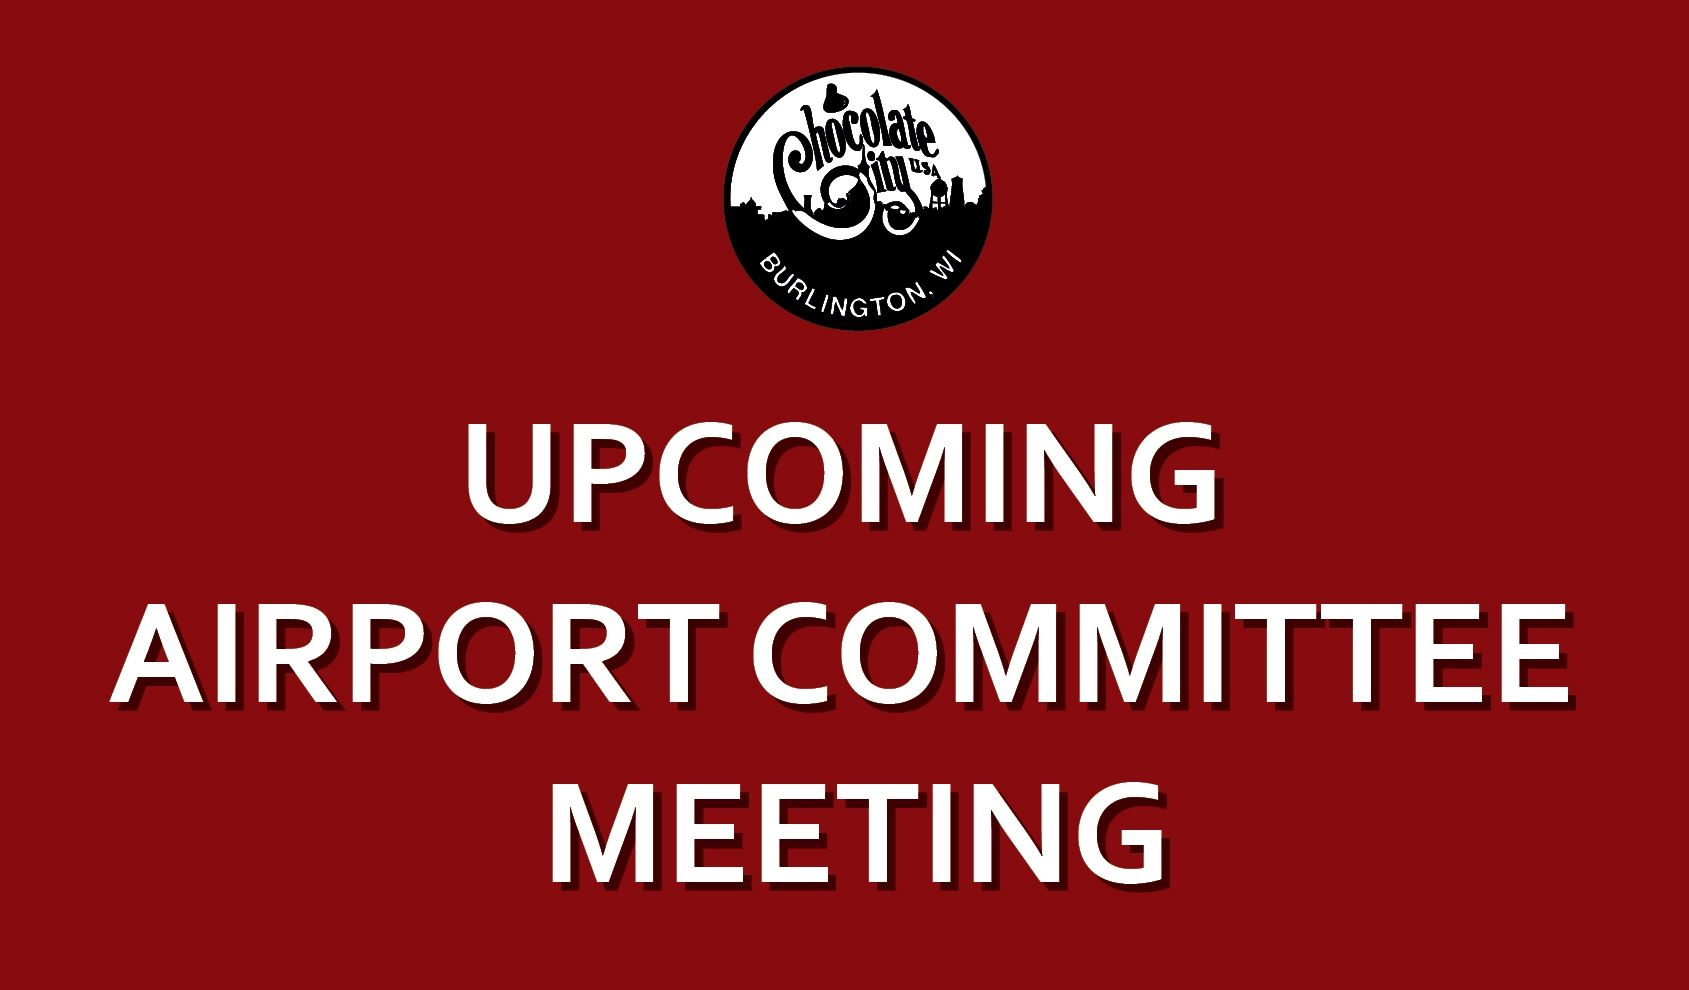 Upcoming Airport Committee Meeting